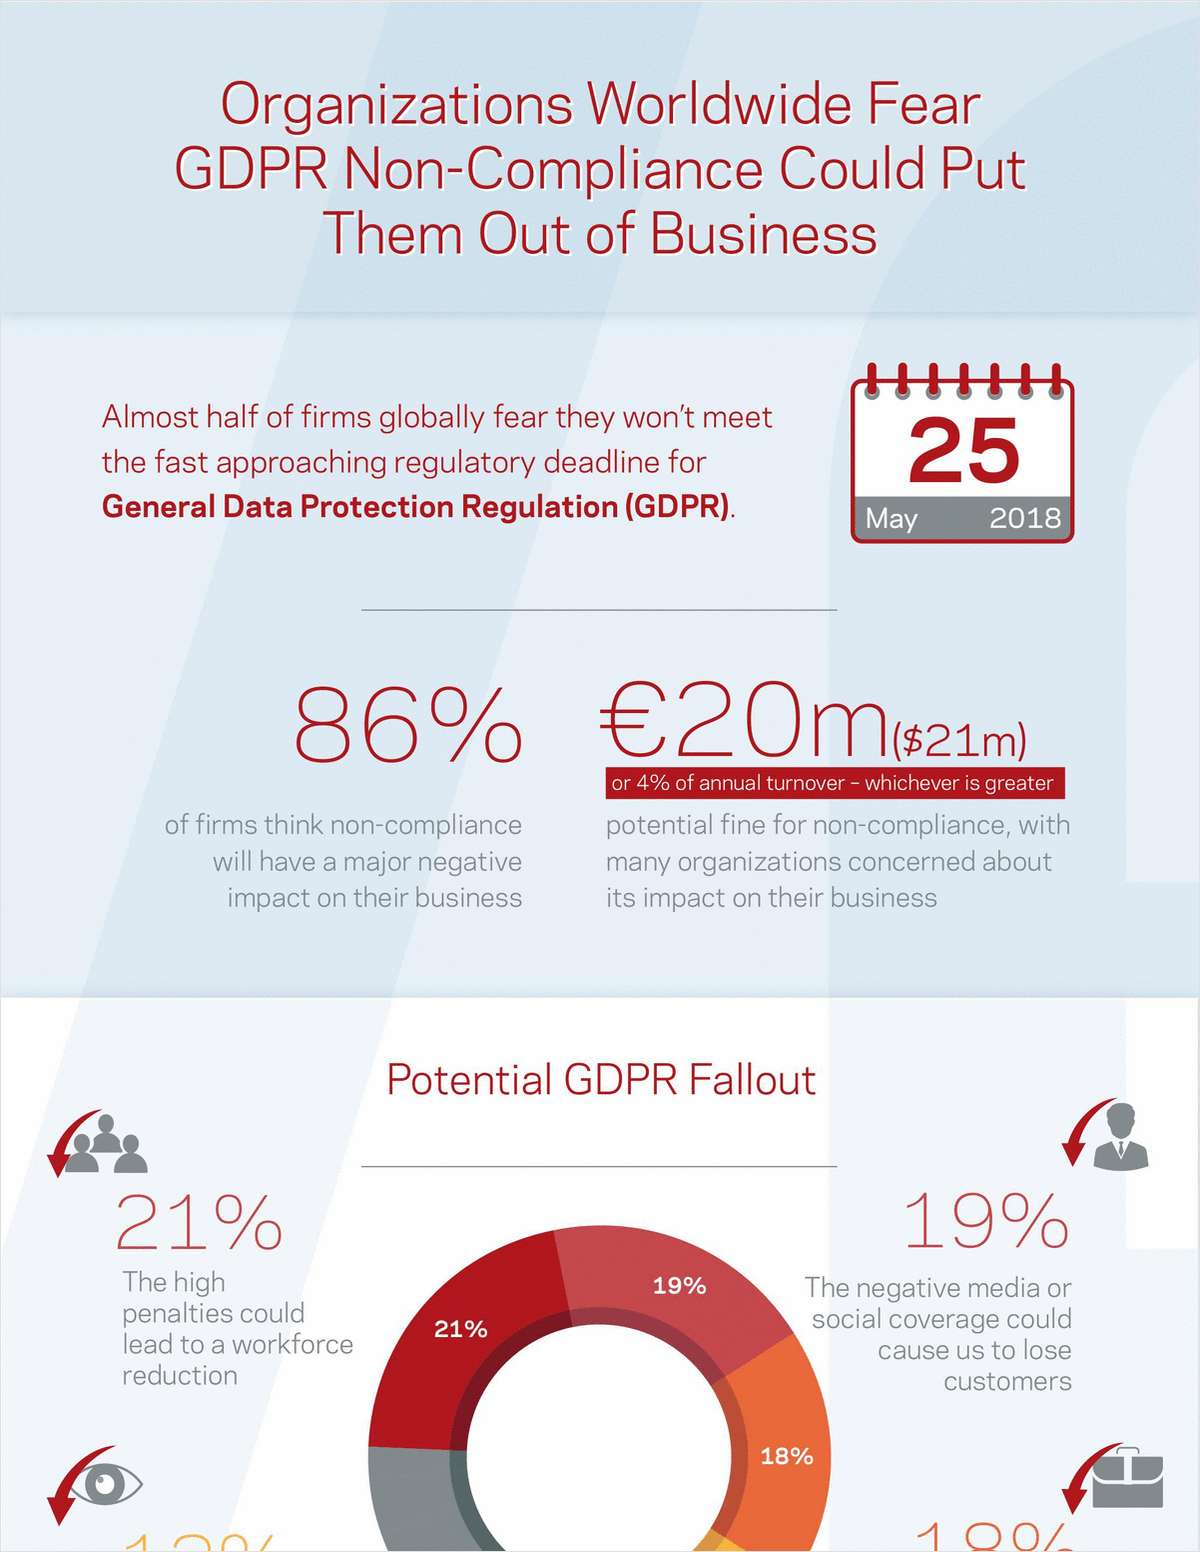 Organizations Worldwide Fear GDPR Non-Compliance Could Put Them Out of Business